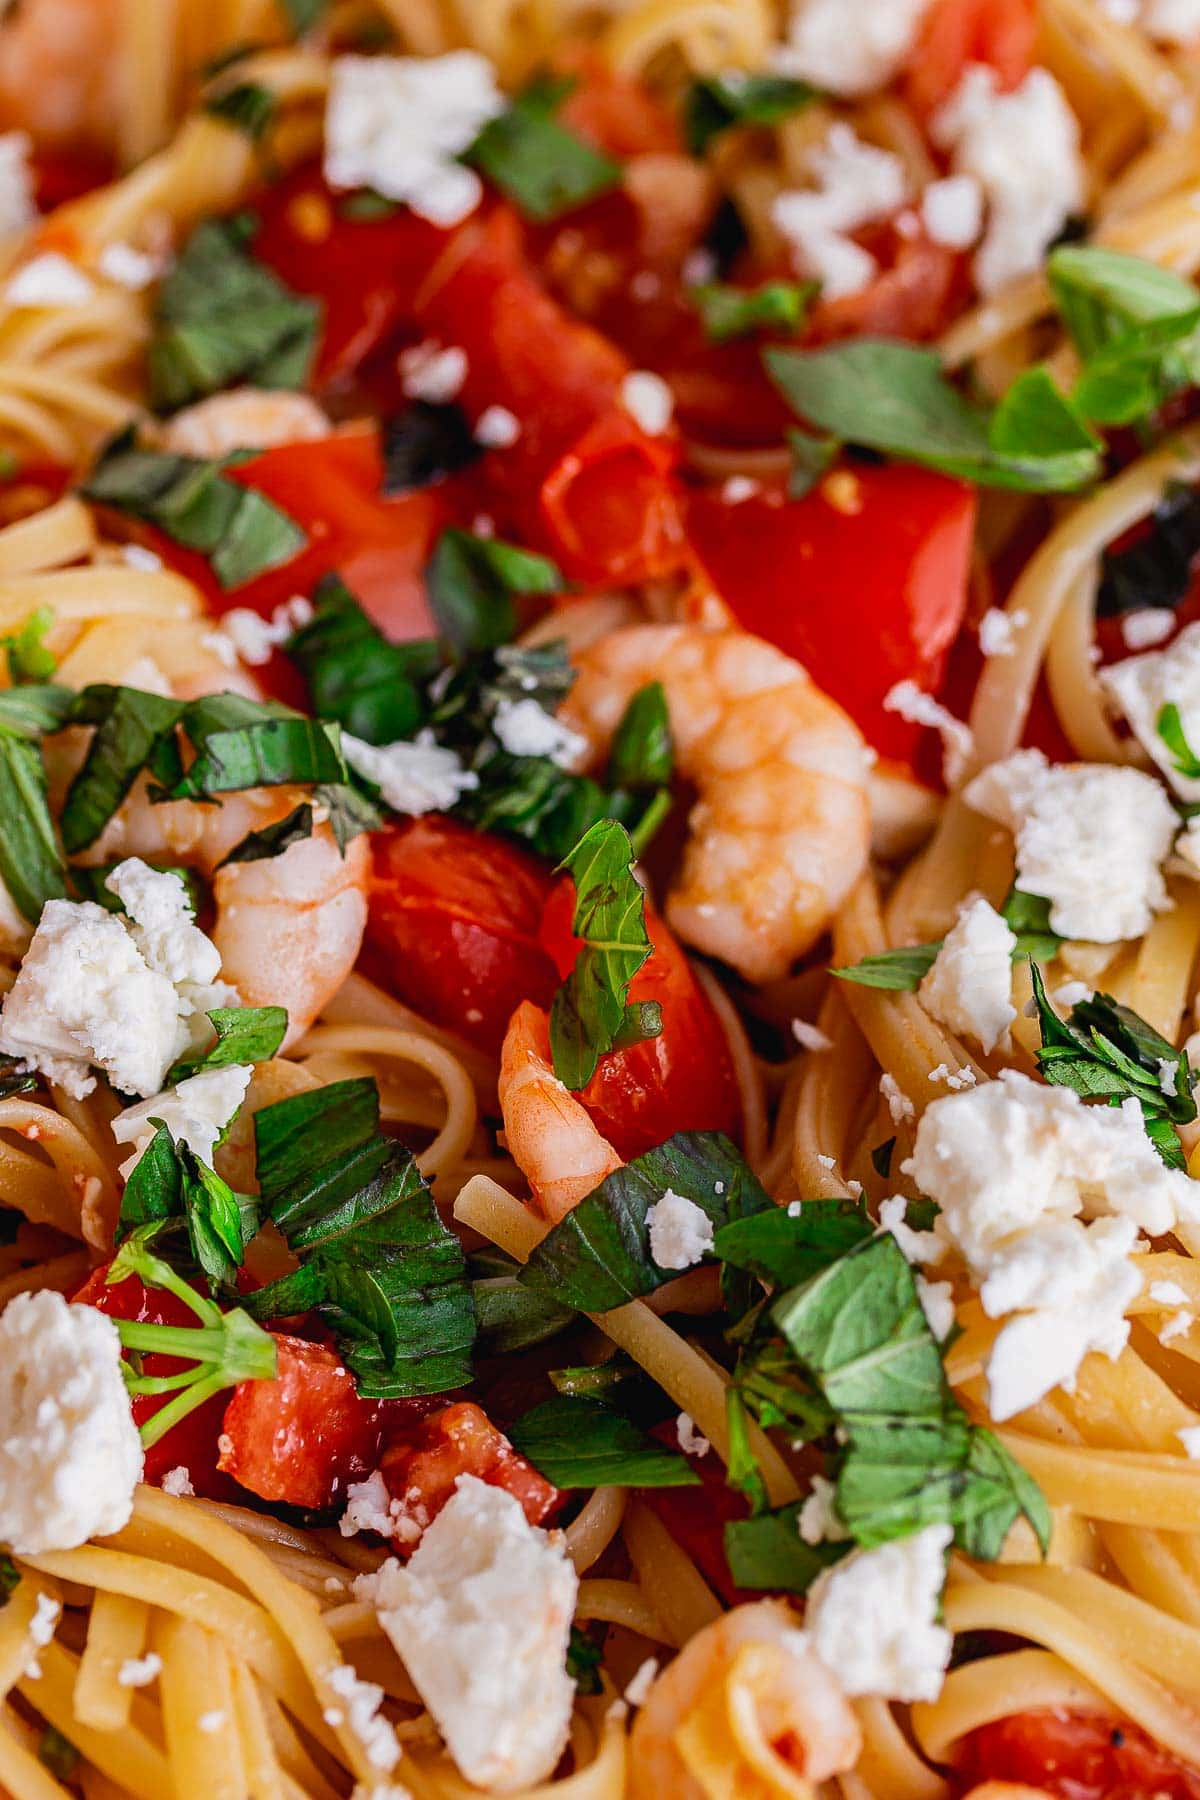 Super close up of prawns, pasta, tomatoes and basil